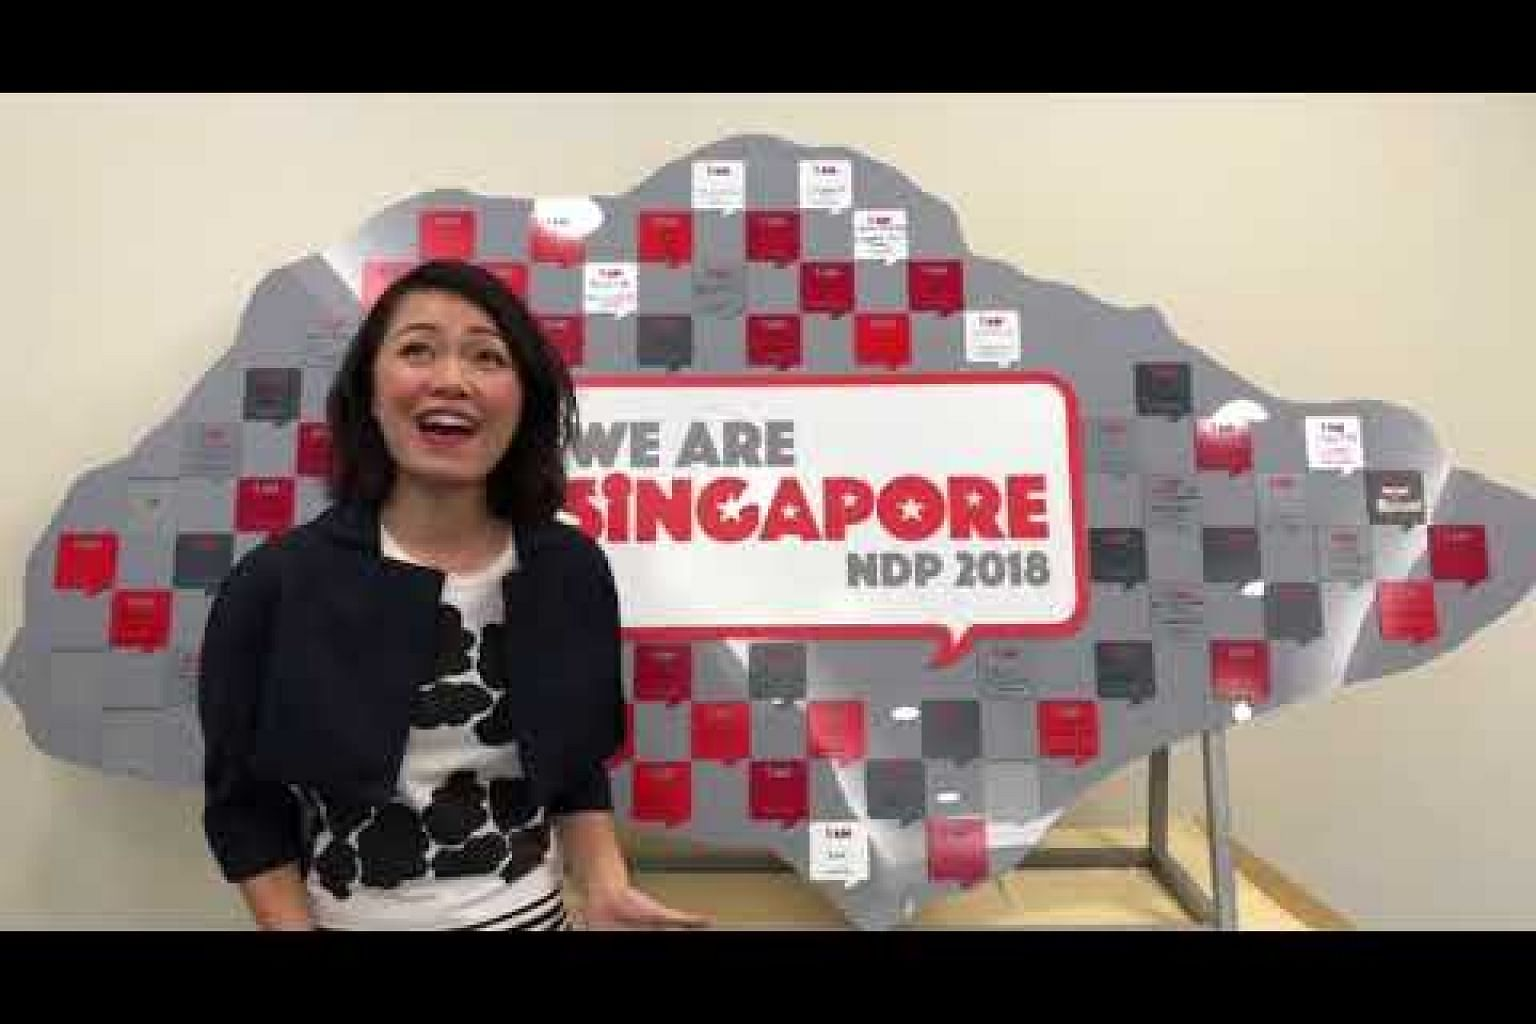 Joanna Dong sings We Are Singapore at the Marina Bay Floating Platform on July 20, 2018